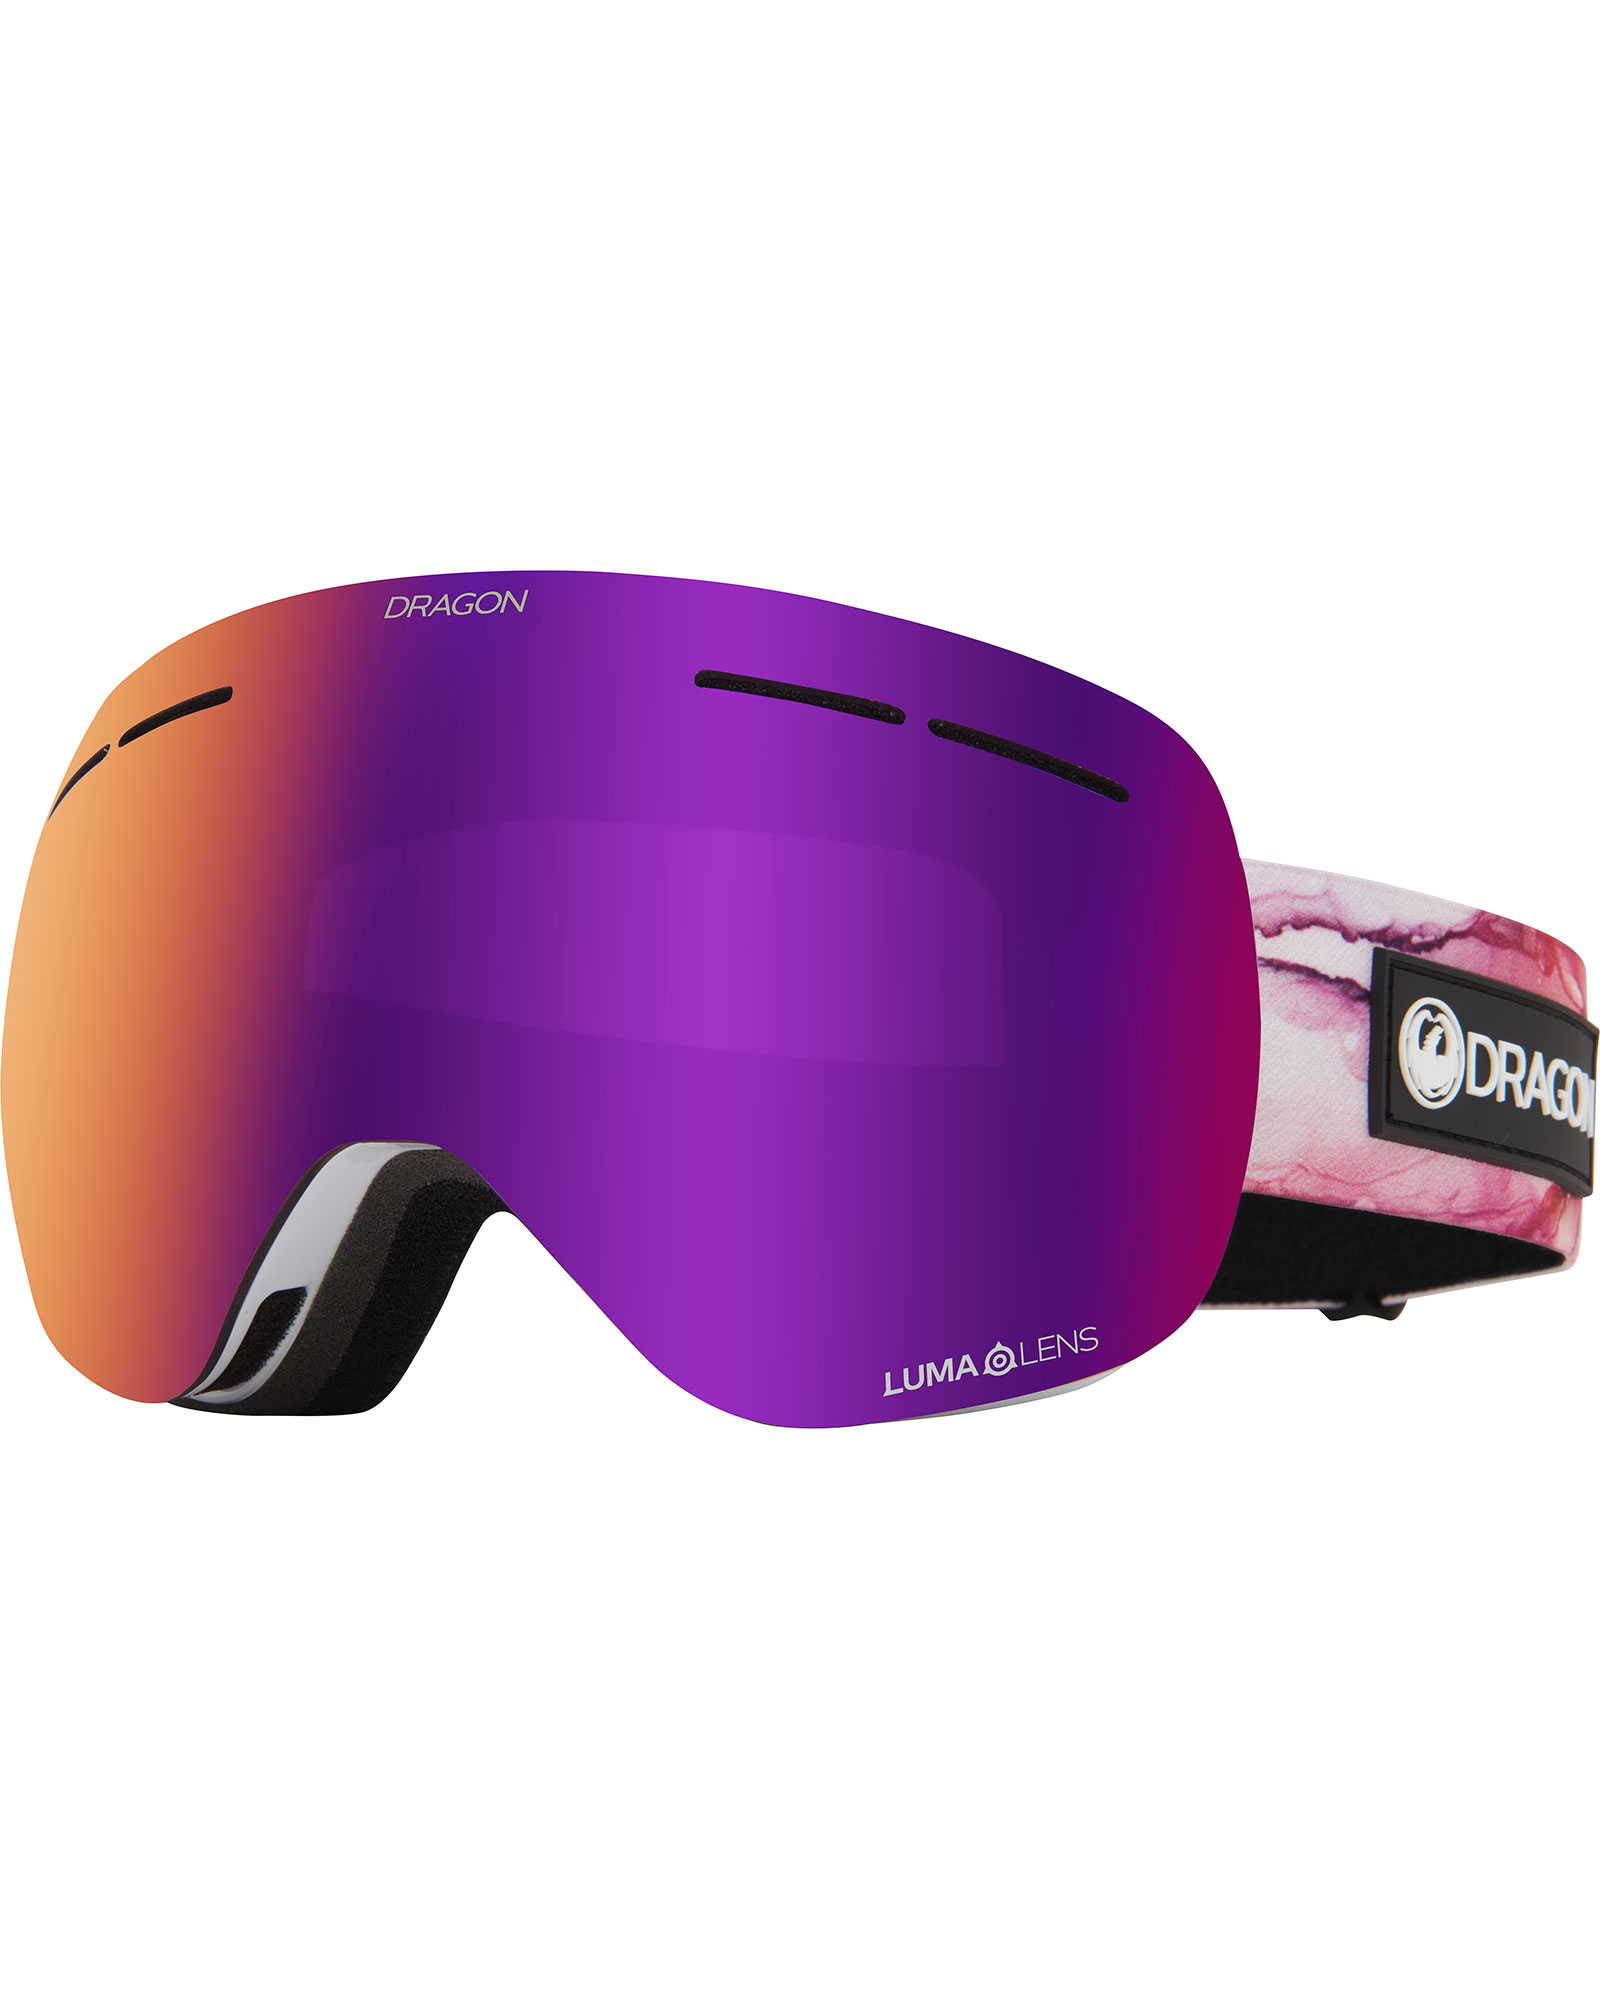 Dragon Women's X1s Merlot / Lumalens Purple Ionized + Lumalens Light Rose Goggles 2020 / 2021 0